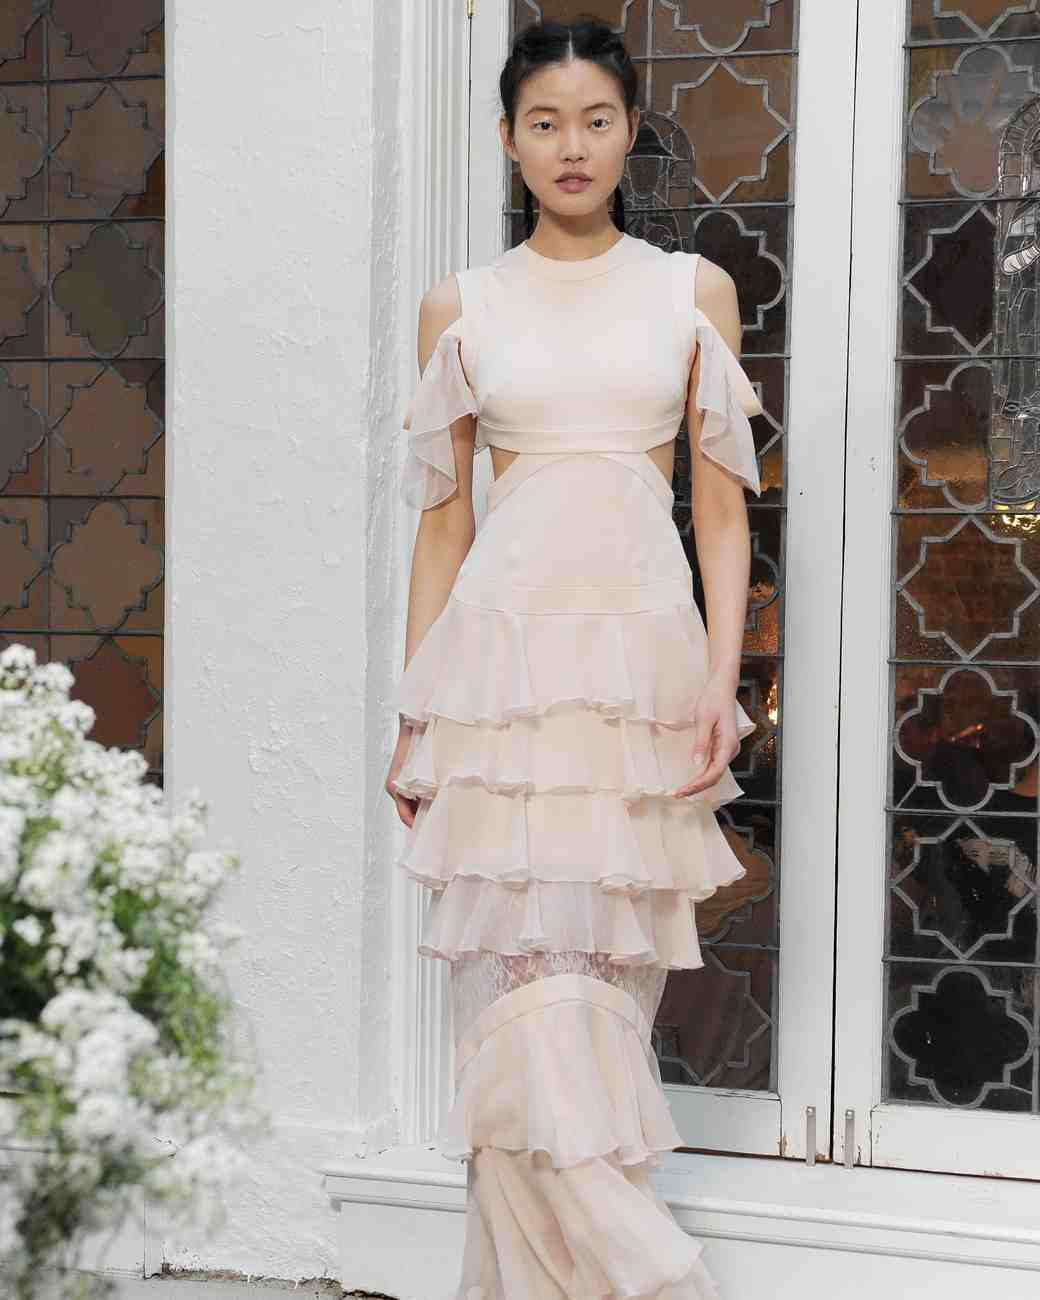 Unconventional Pink Wedding Dress